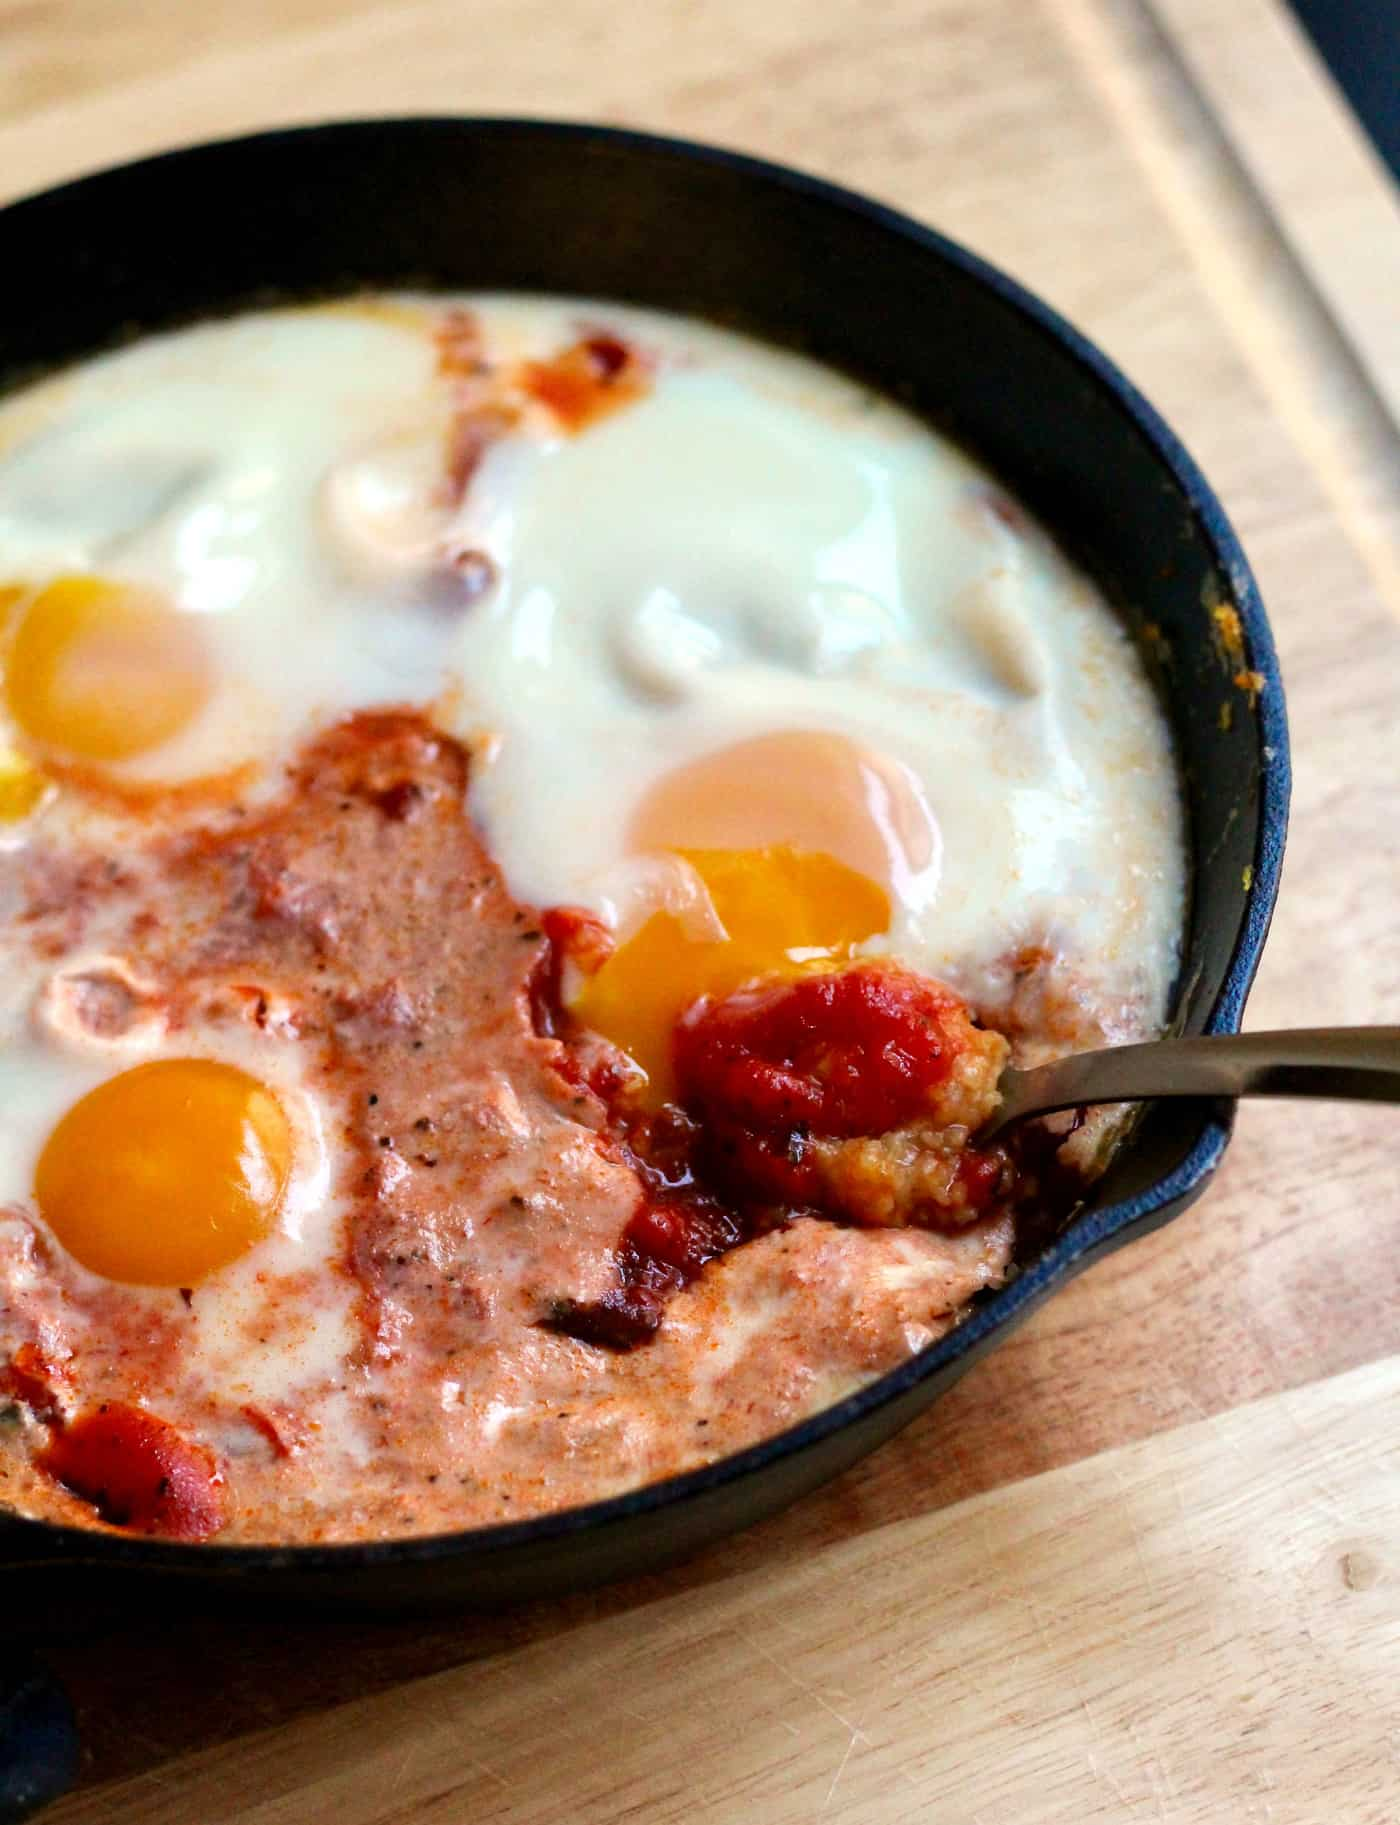 Skillet-Baked Polenta and Eggs